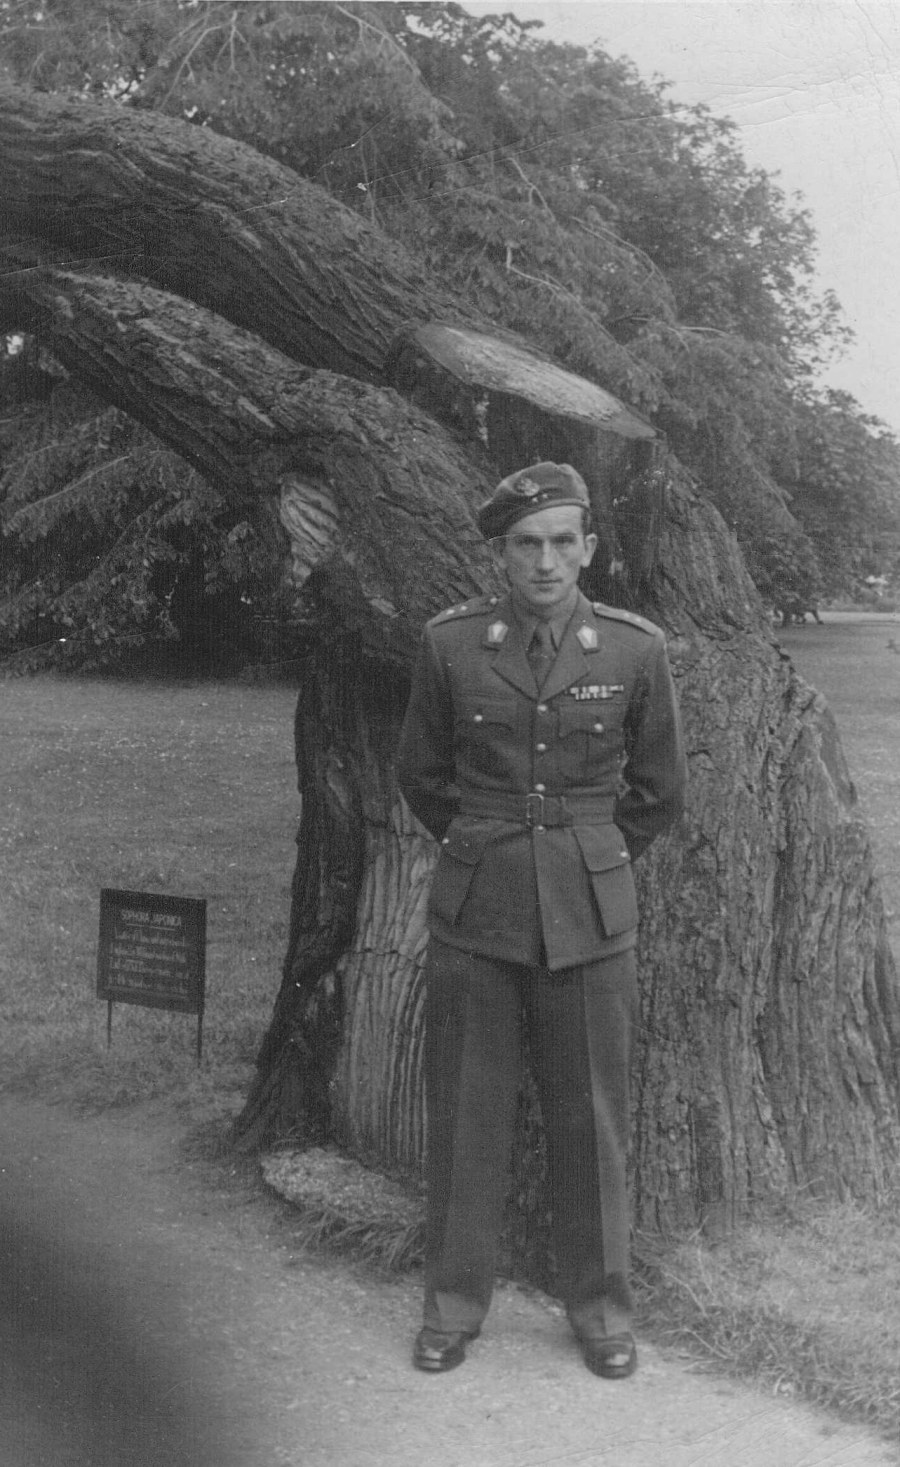 Image of Lieutenant Commander Gustaw G&#243;recki ps. Gustaw, Commander 2<sup>nd</sup> Company, I Battalion  In London After The War July 31, 1947